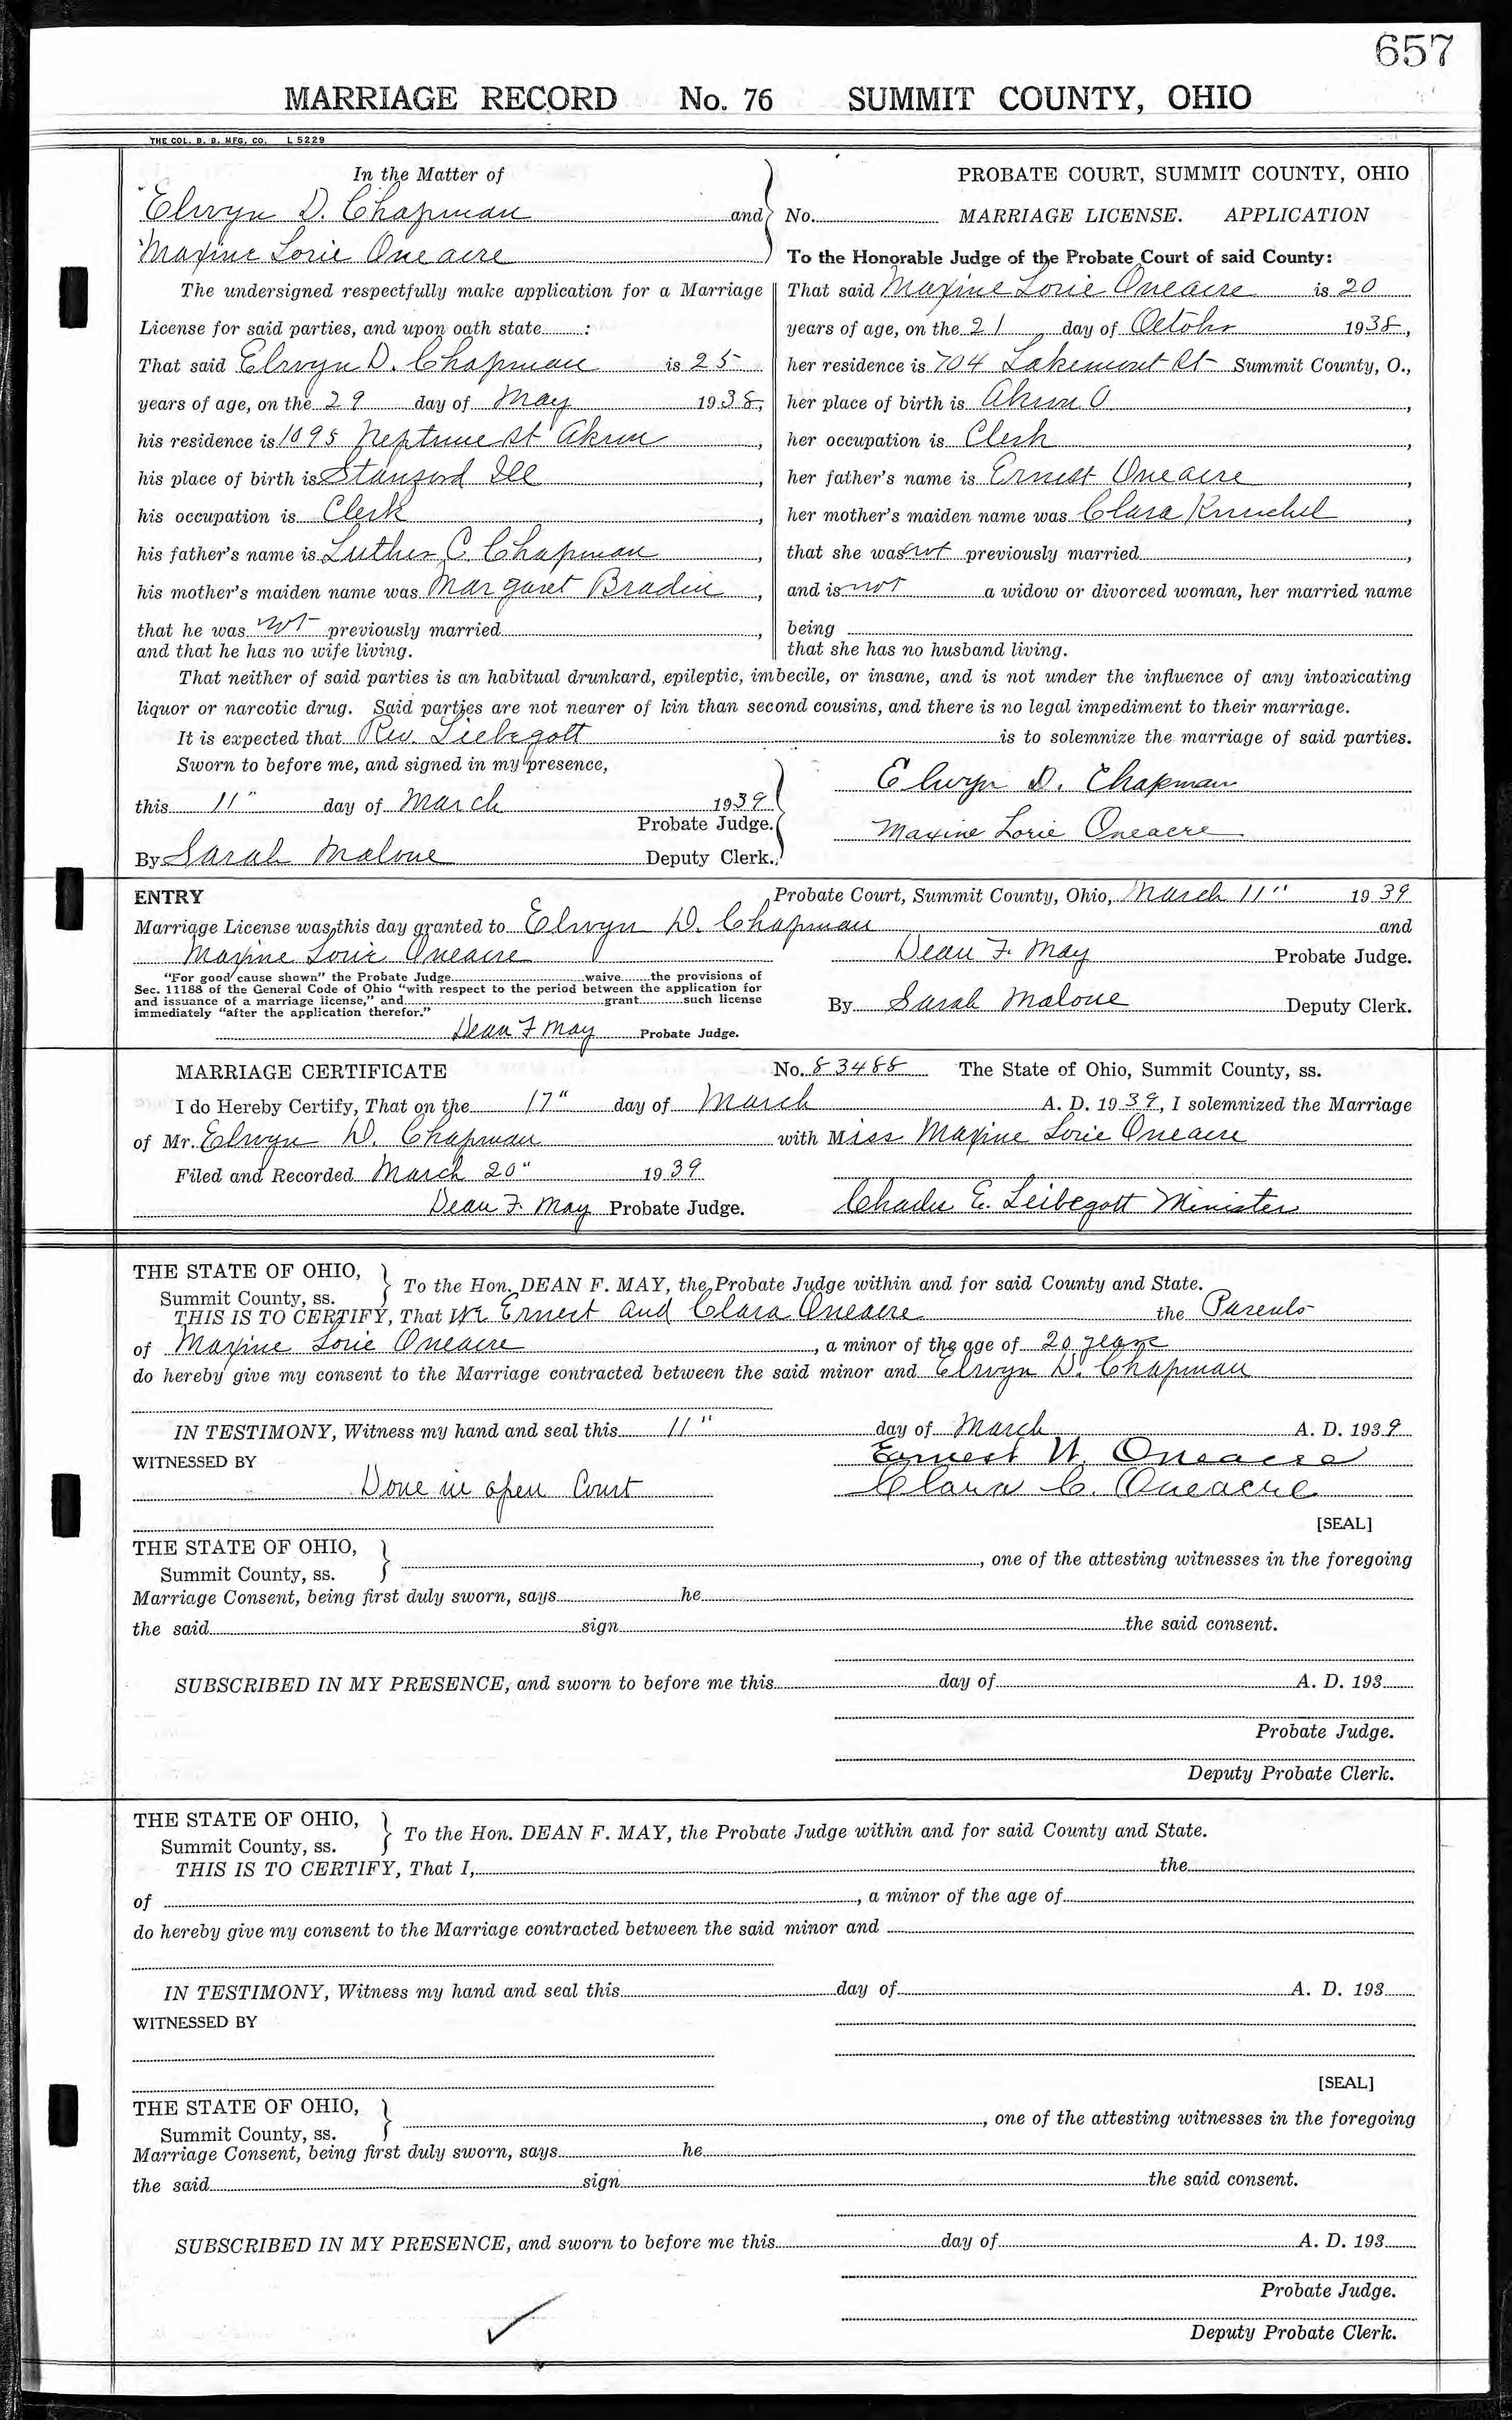 Documents Marriage Certificate For Maxine L Oneacre And Elwyn D